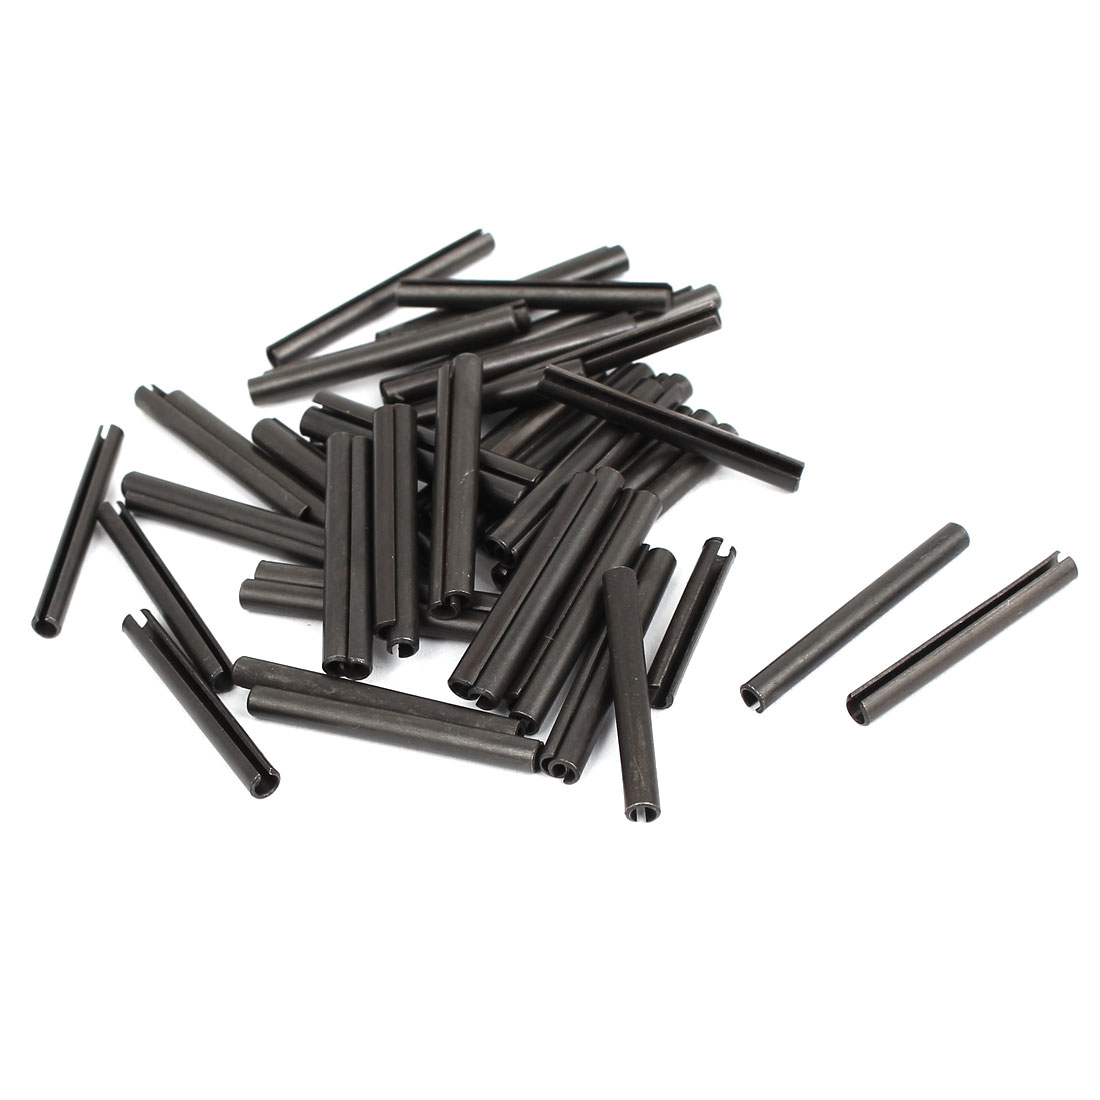 50pcs Carbon Steel Split Spring Dowel Tension Roll Pin Hardware M3x30mm